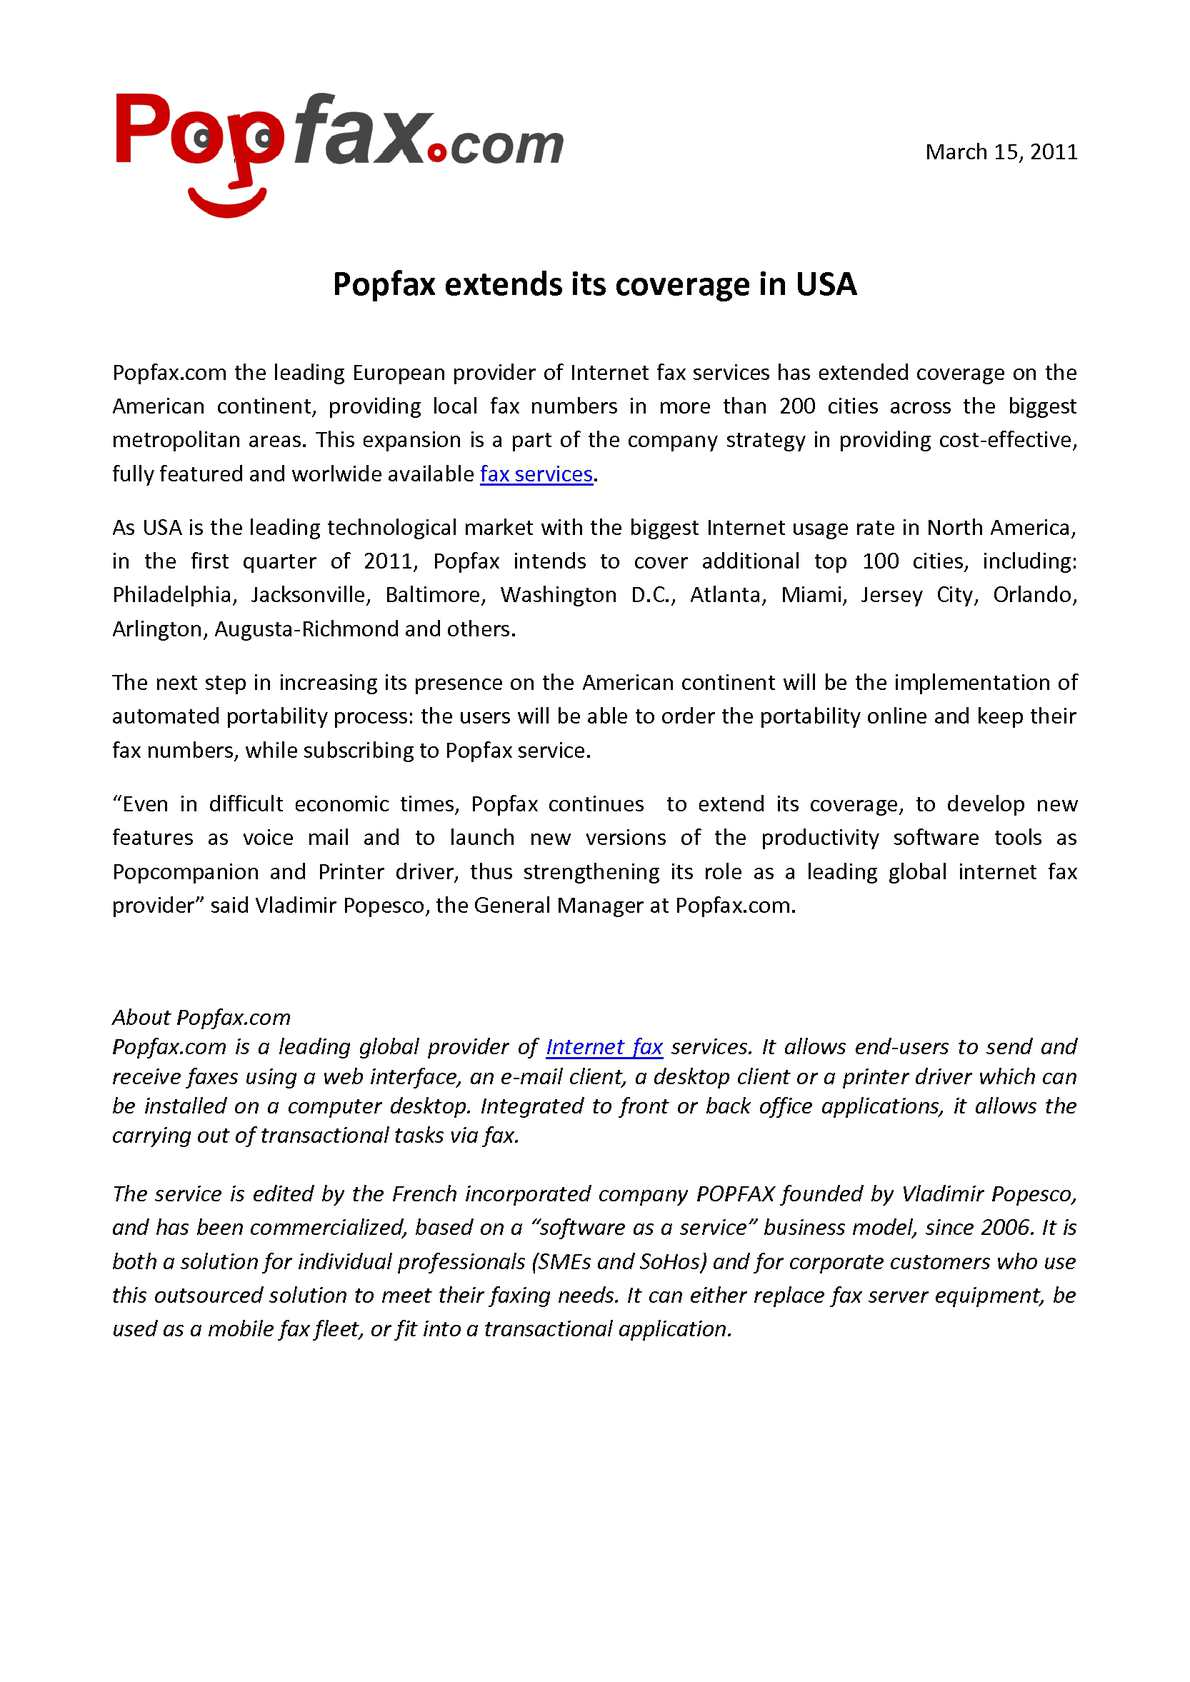 Calaméo - Popfax extends its coverage in USA